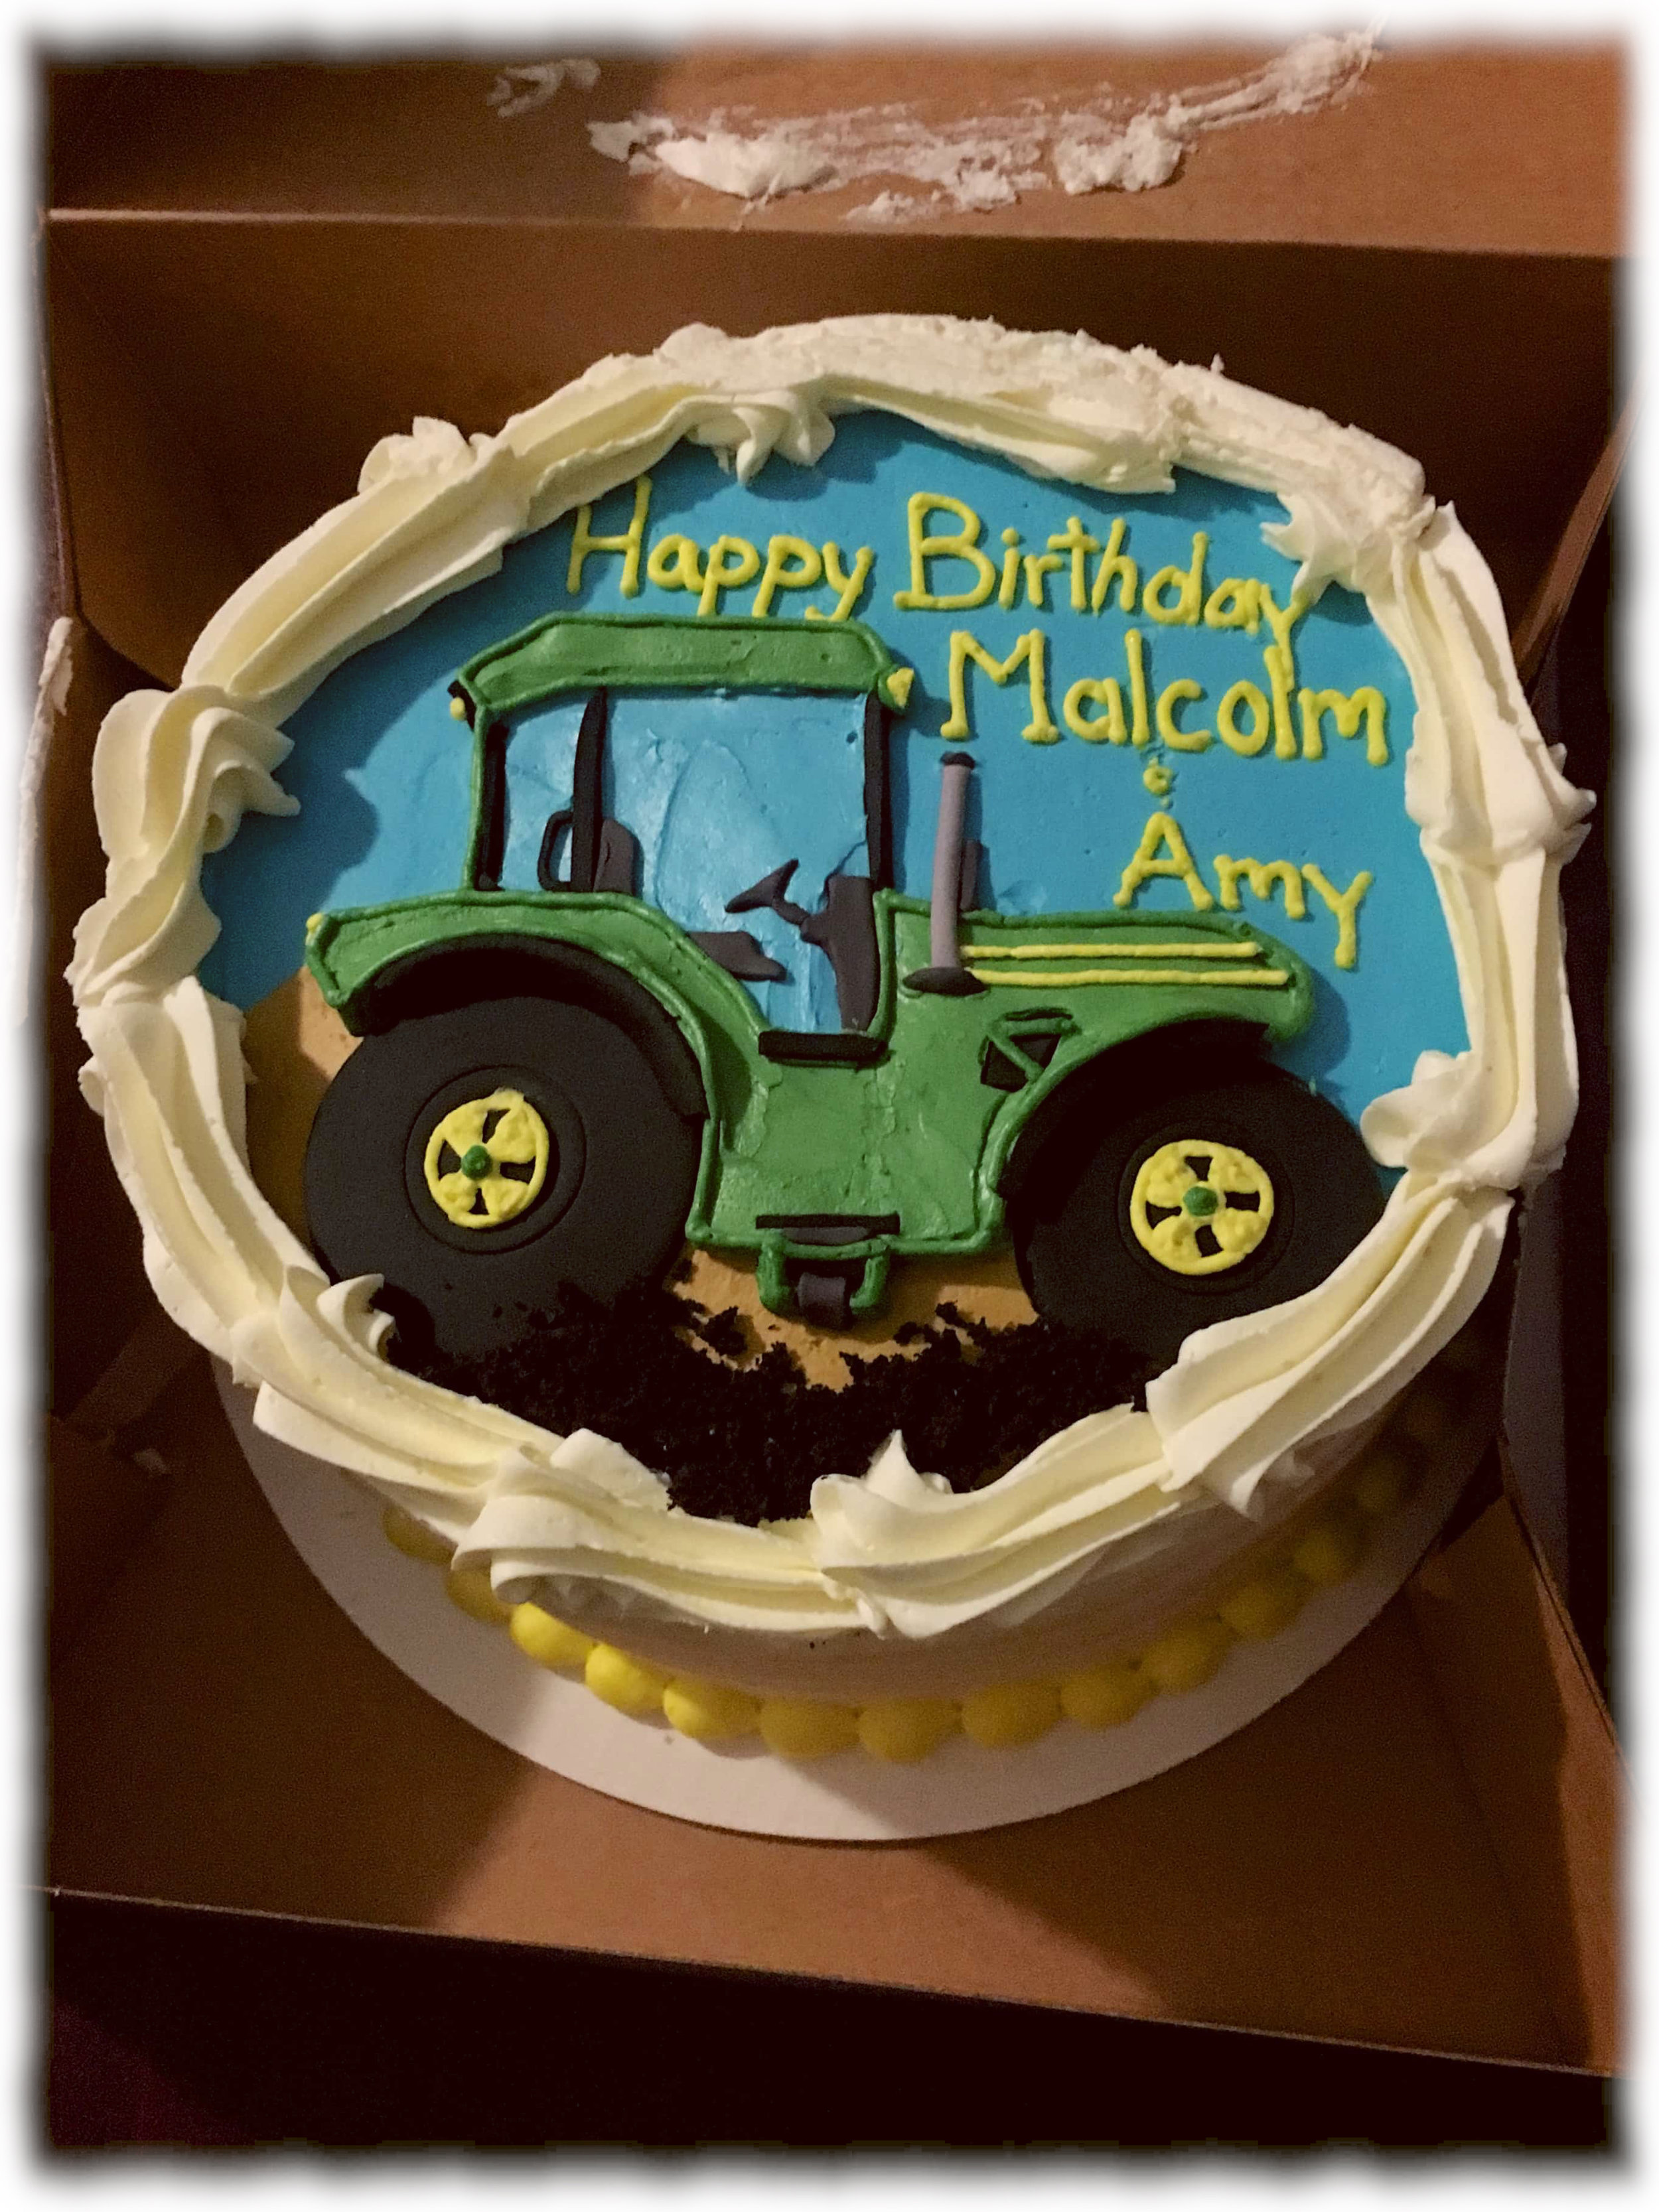 The barn celebrated Malcolm James Kuhn and Amy Blum's birthdays during finals.